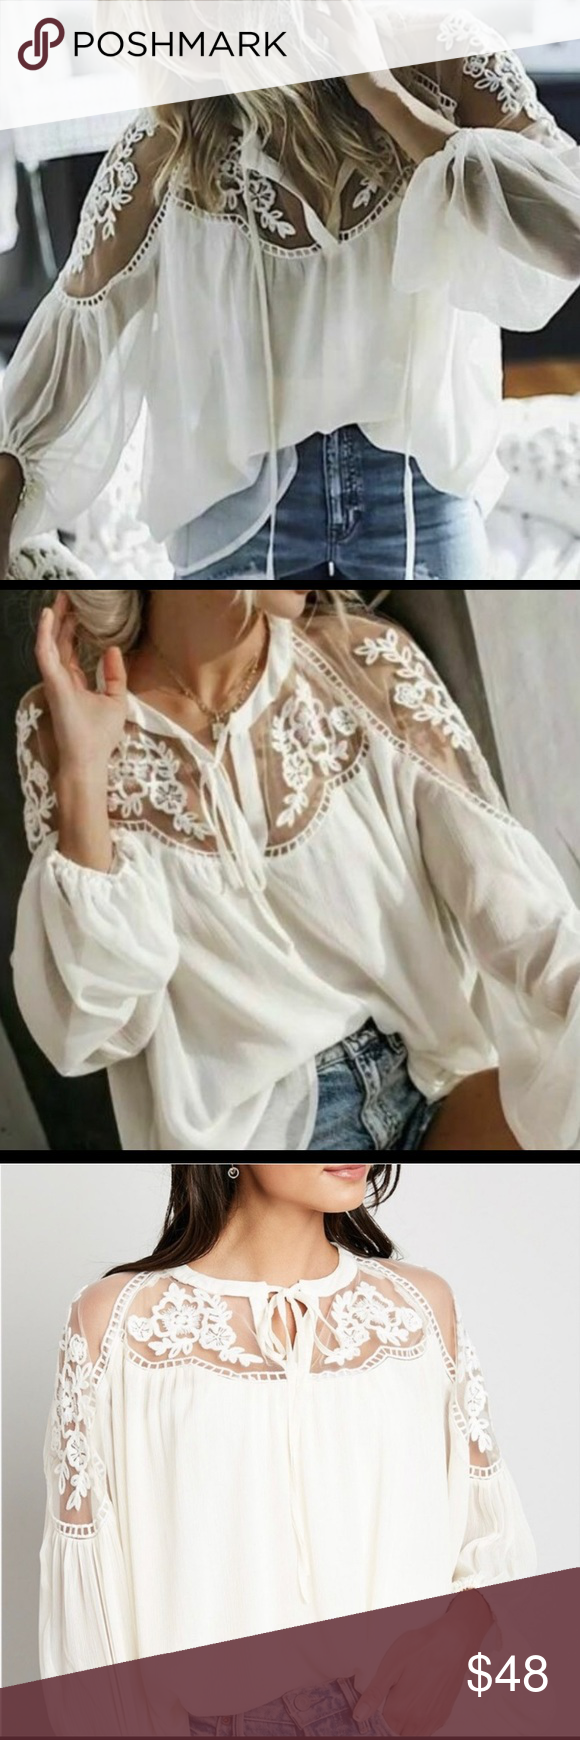 "Women's Chiffon Cream Lace Blouse NWT Women's Chiffon Cream Lace Blouse  NEW WITH TAGS Boutique Blouse featuring a cream vase with lace detailed shoulders and feminine flowing body.  Polyester Blend Medium/Large 26"" in Length  2XL/3XL 29"" in Length  1195 1196 Hayden Tops Blouses"